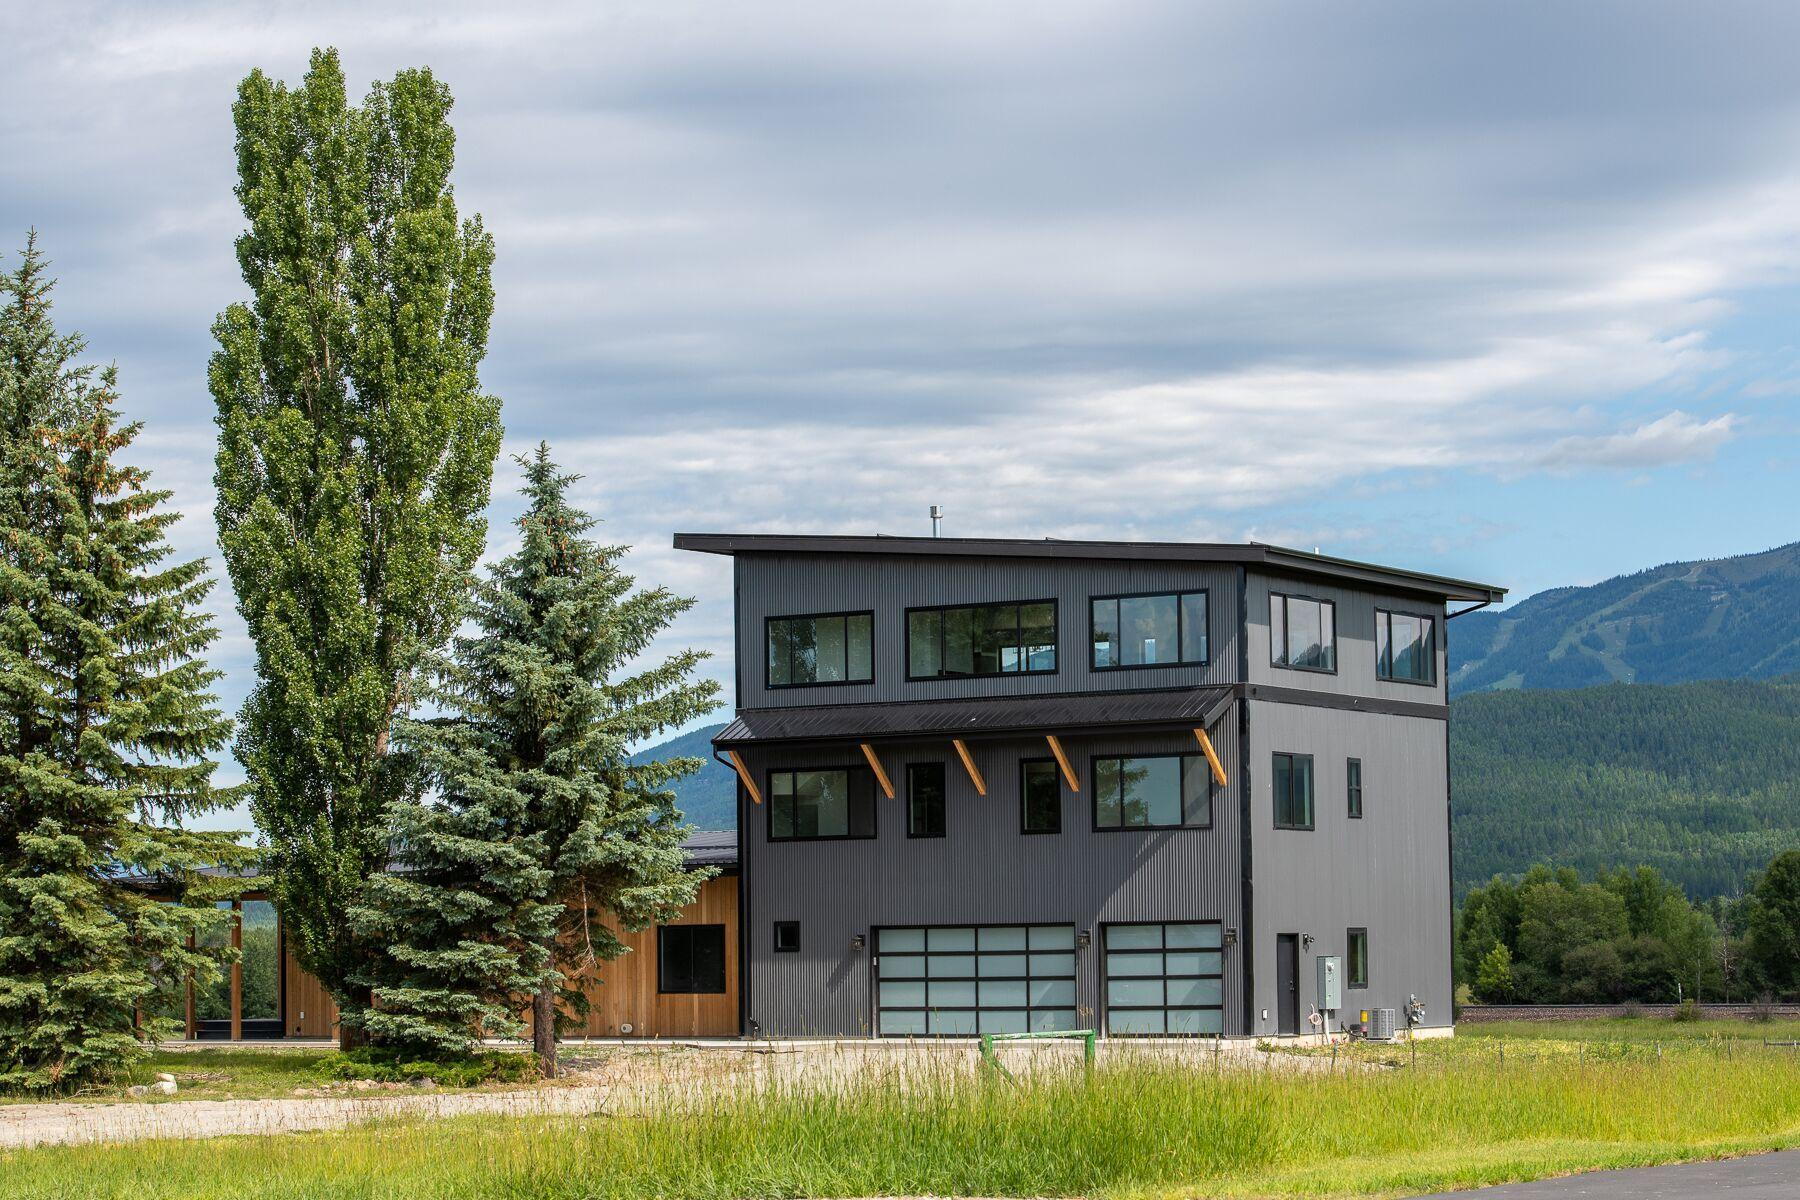 Home for Sale at 465 Armory Road in Whitefish, Montana for